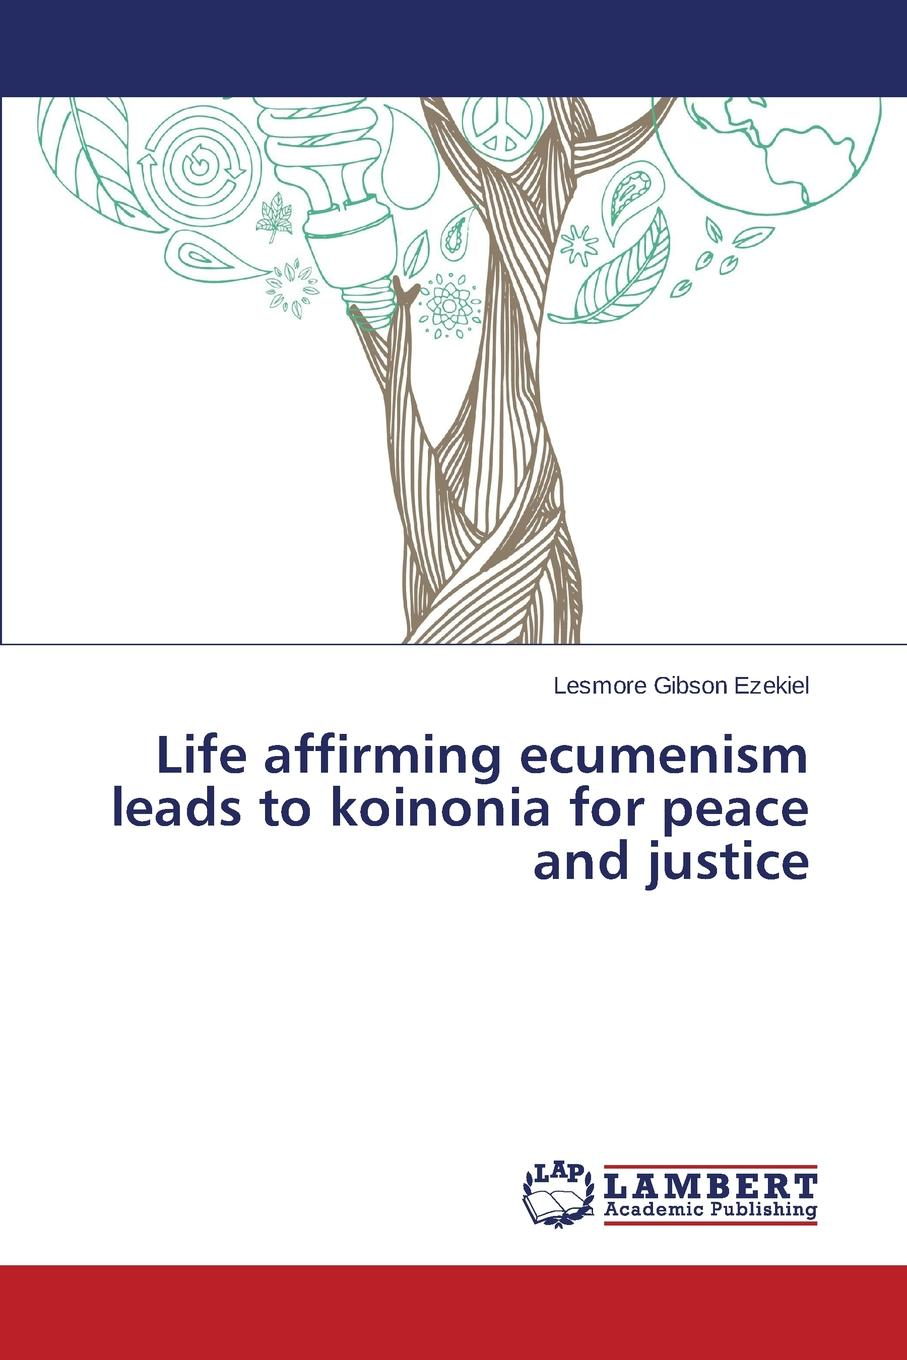 Ezekiel Lesmore Gibson Life affirming ecumenism leads to koinonia for peace and justice peace and justice